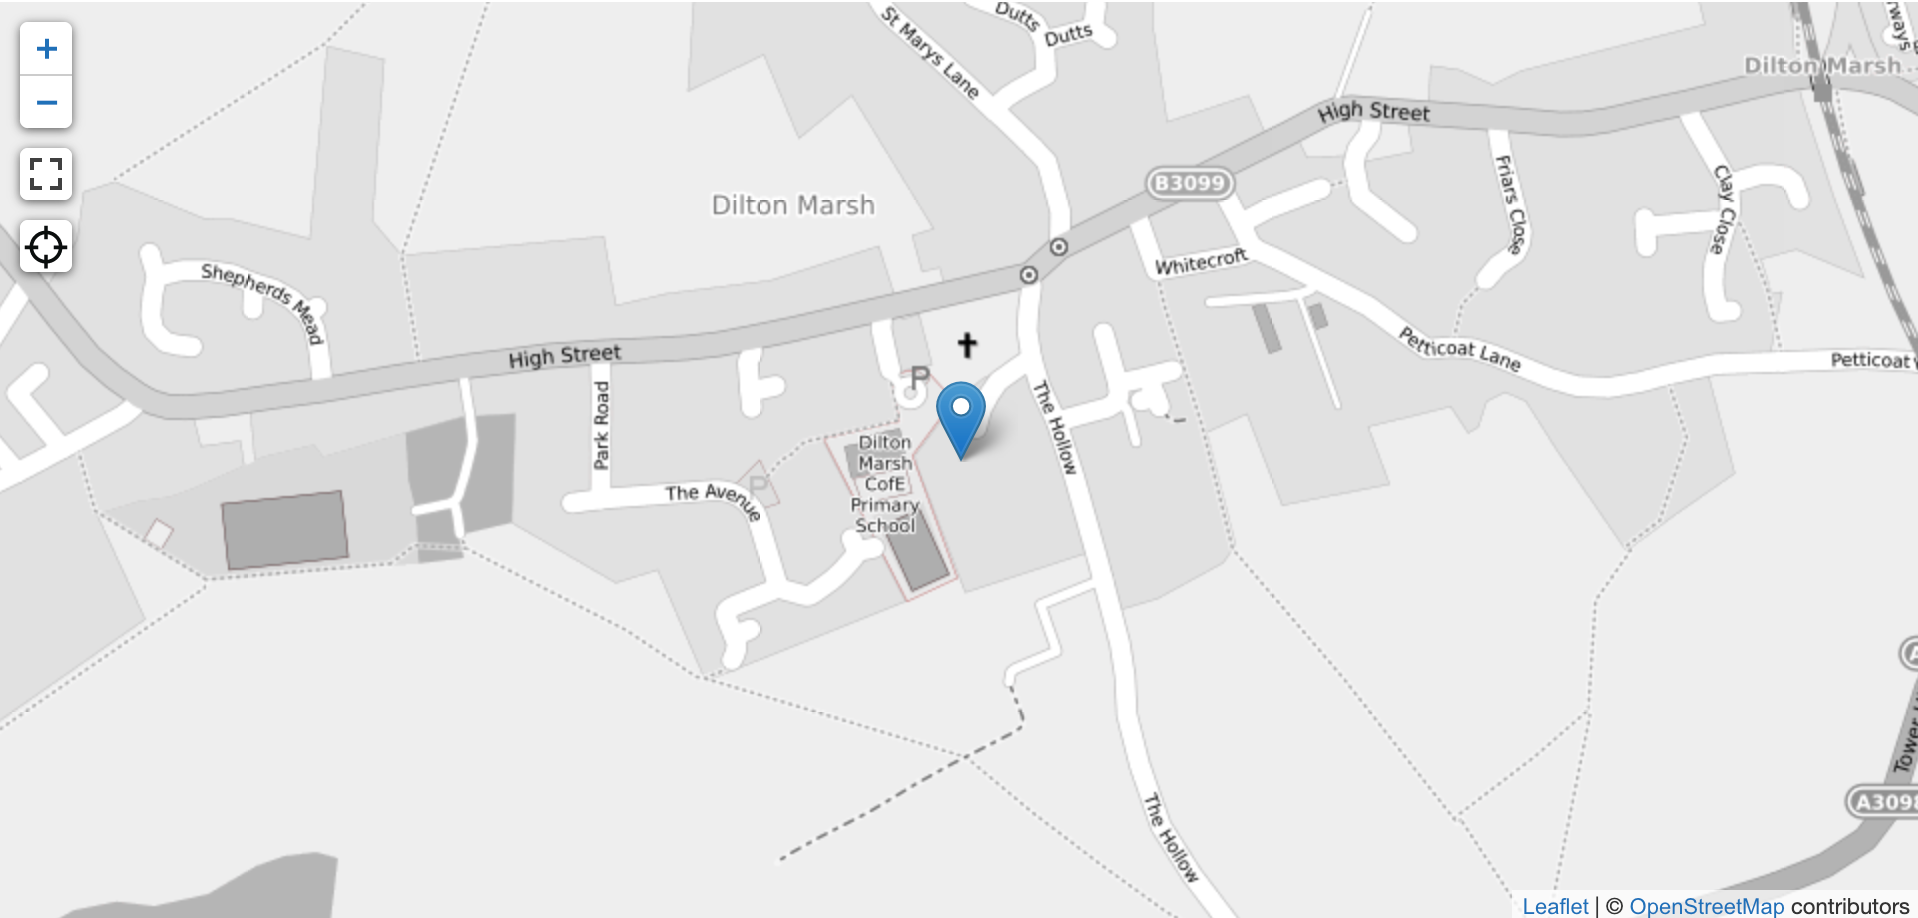 An example of point data shown on a map - in this case it is the location of a listed building